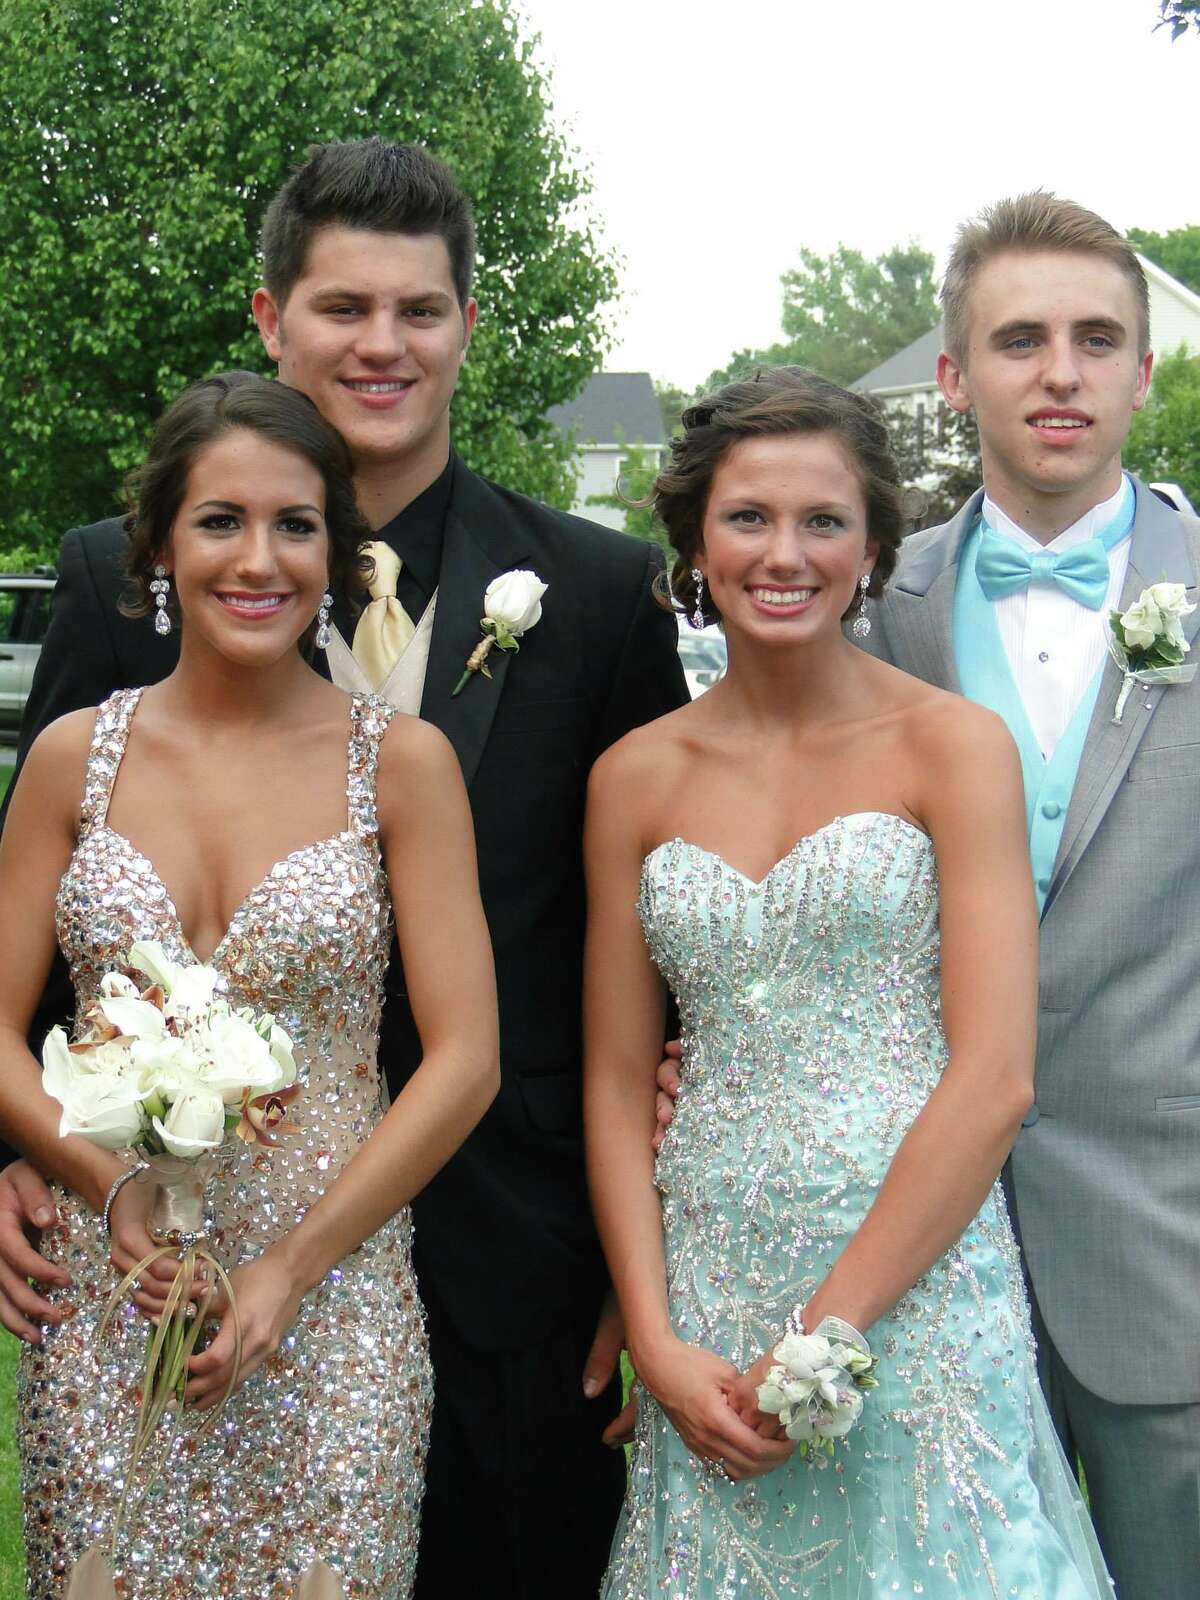 Were you Seen at the Colonie Central High School Senior Prom at the Albany Marriott in Colonie on Saturday, June 1, 2013?